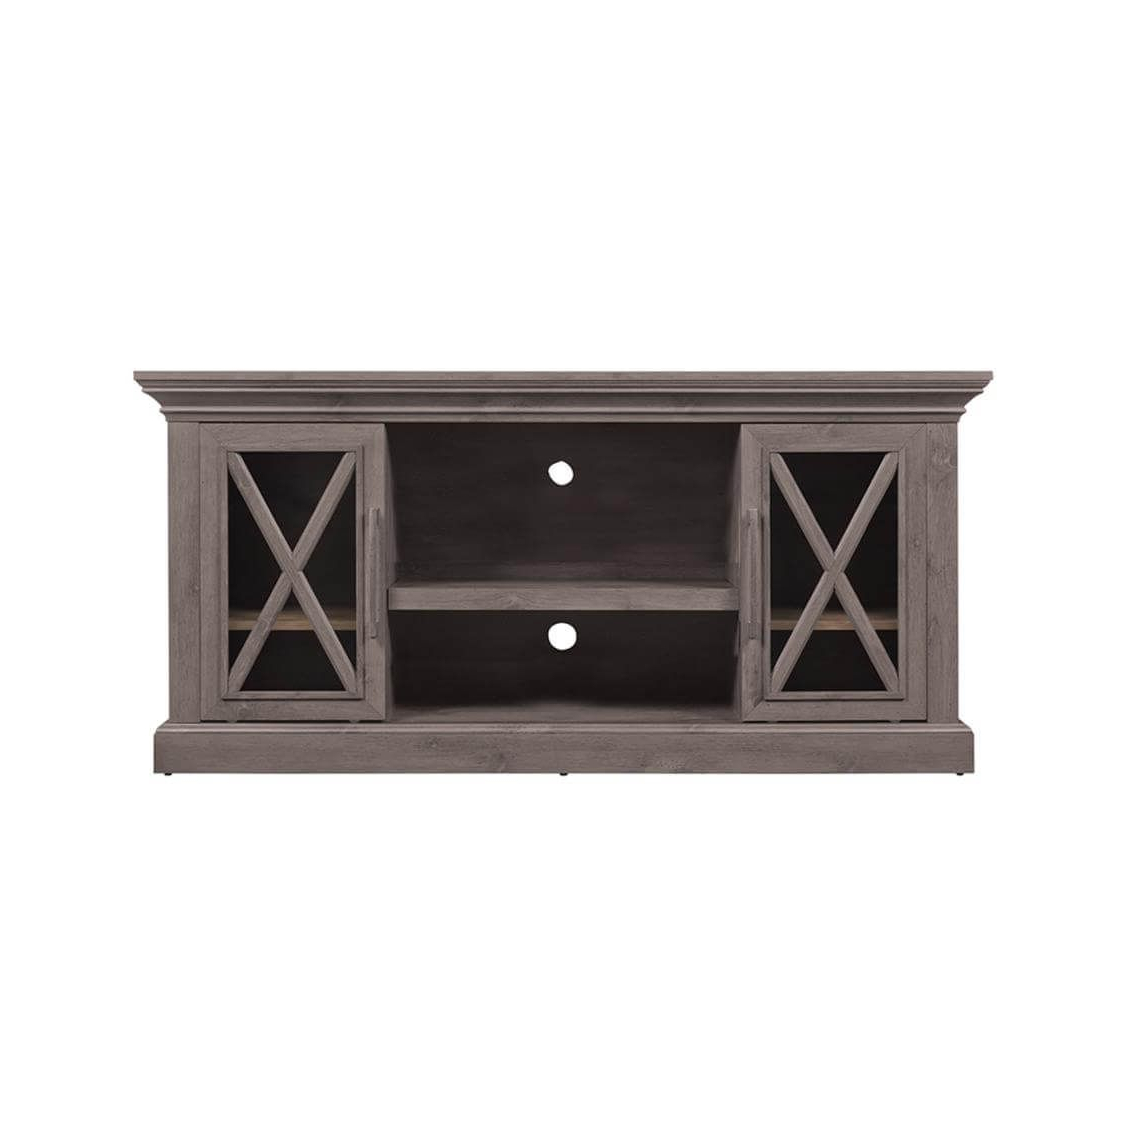 34 Enhance Your Living Space With Amazing Lowes Fireplace Tv Stand Within Sinclair Grey 74 Inch Tv Stands (View 13 of 20)